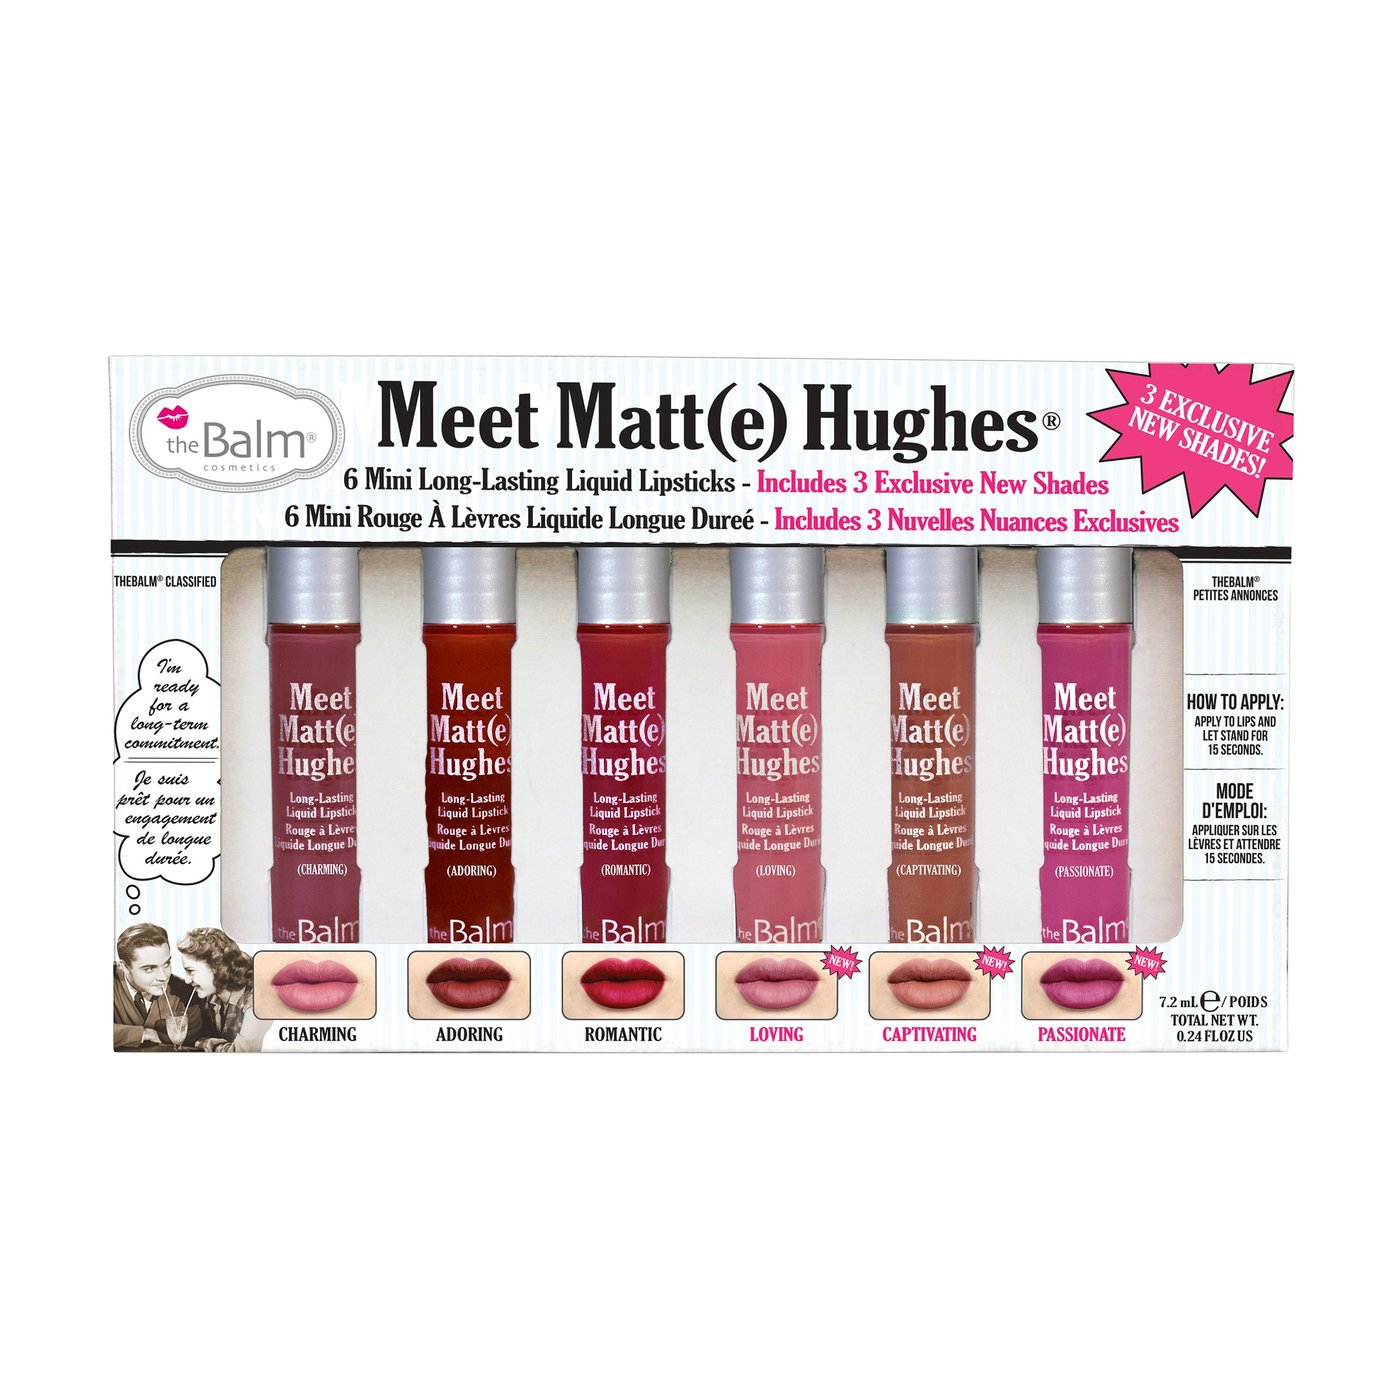 theBalm Meet Matte Hughes Lipsticks Kit - Vol 3